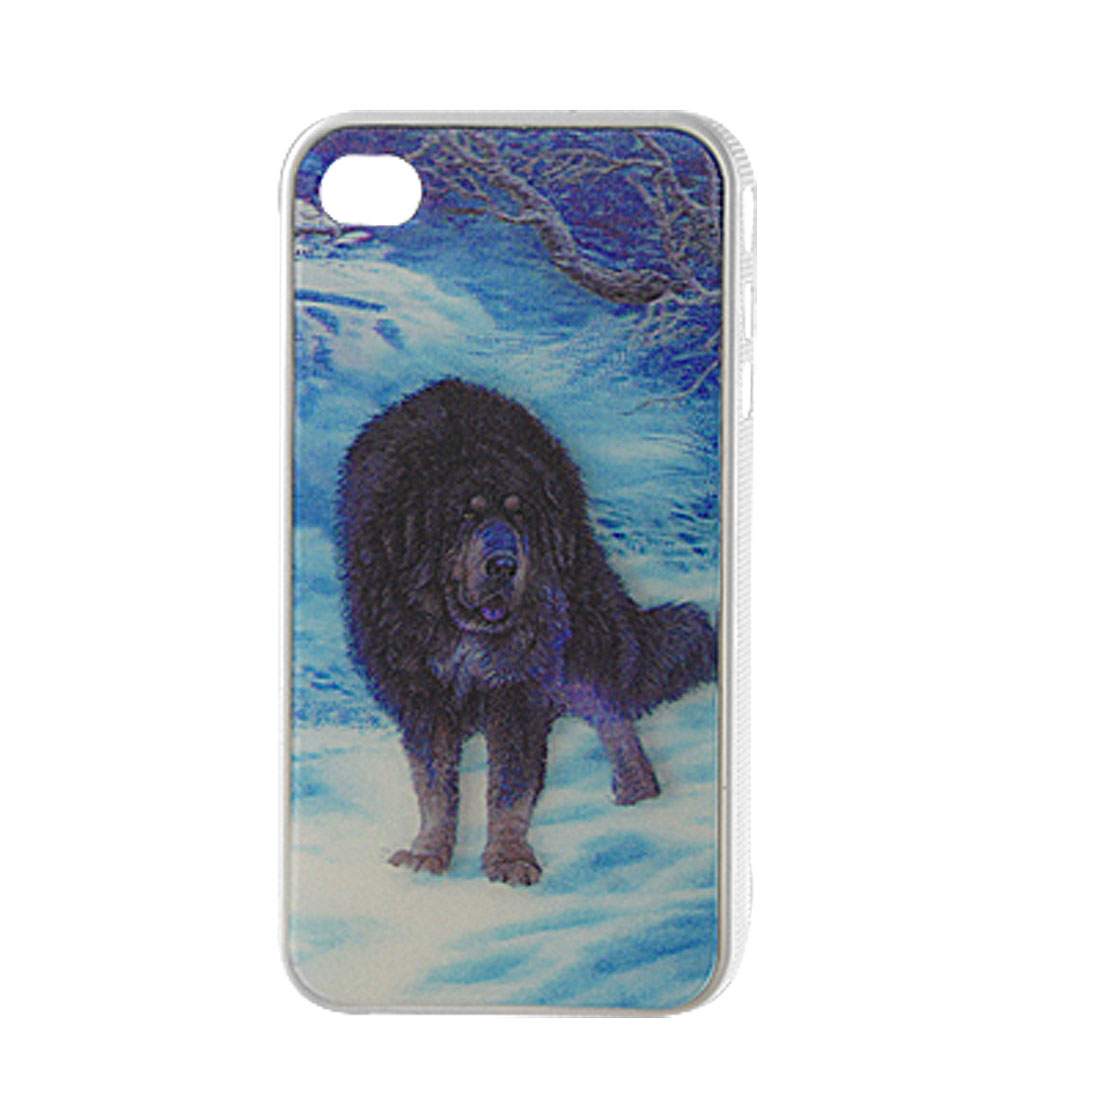 3D Snowfield Bear Pattern Plastic Back Case for iPhone 4 4G